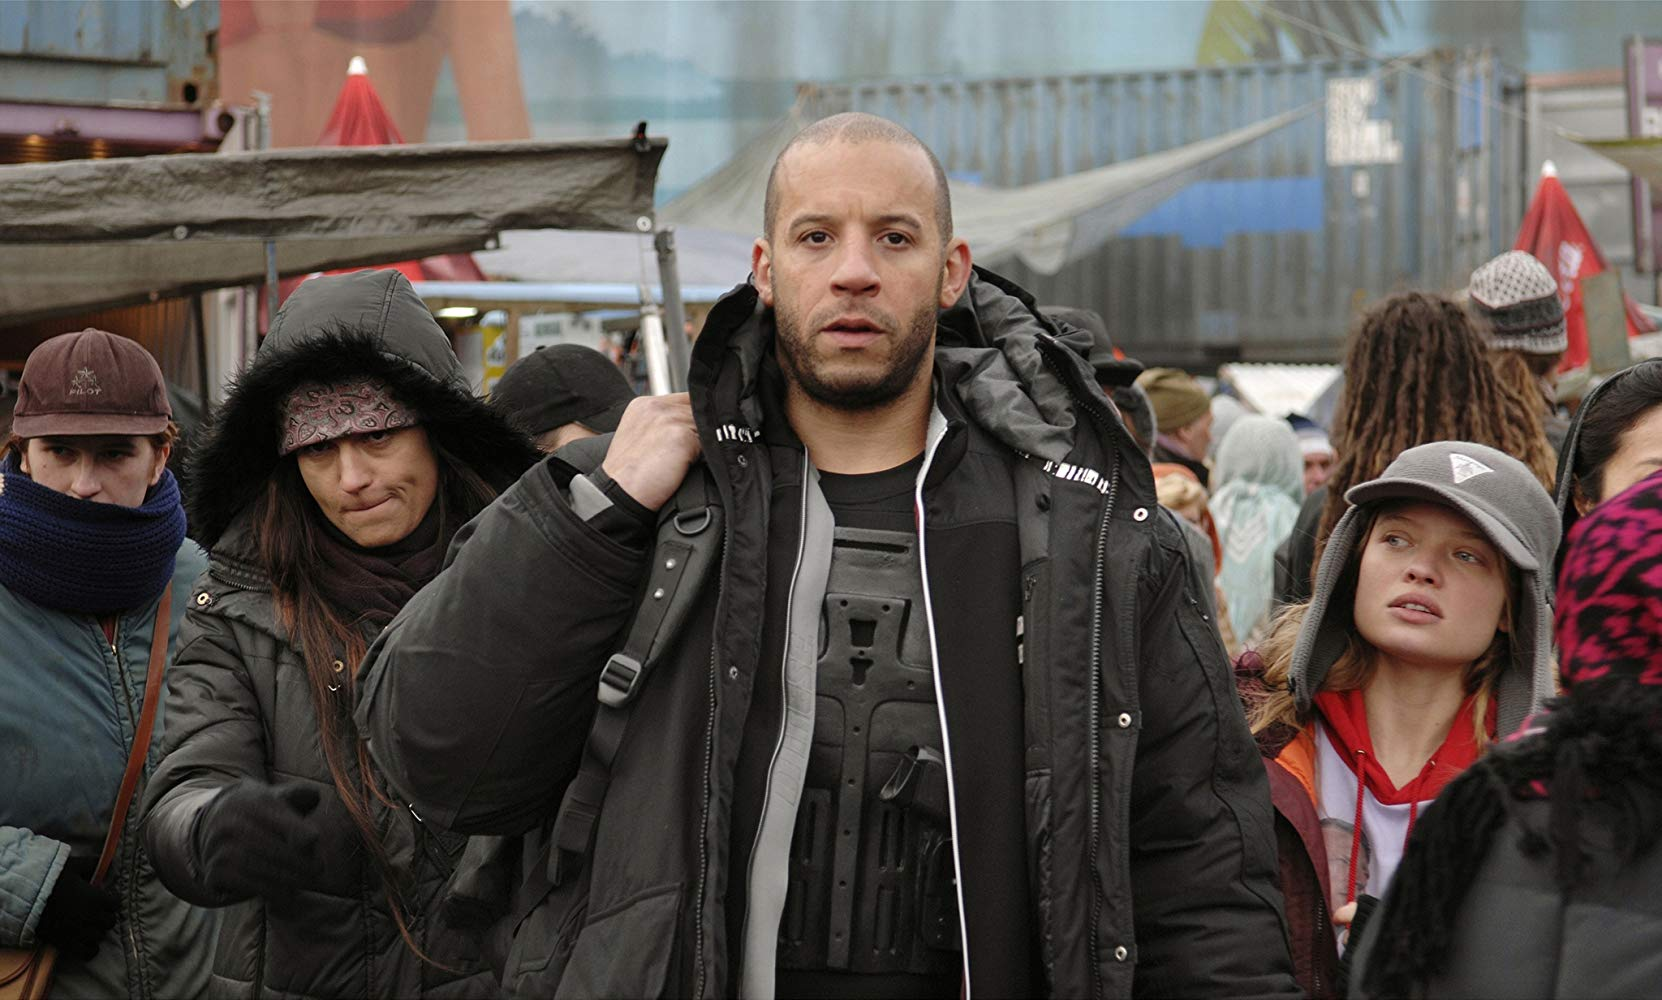 Vin Diesel passes through the streets of a Cyberpunk future in Babylon A.D. (2008)